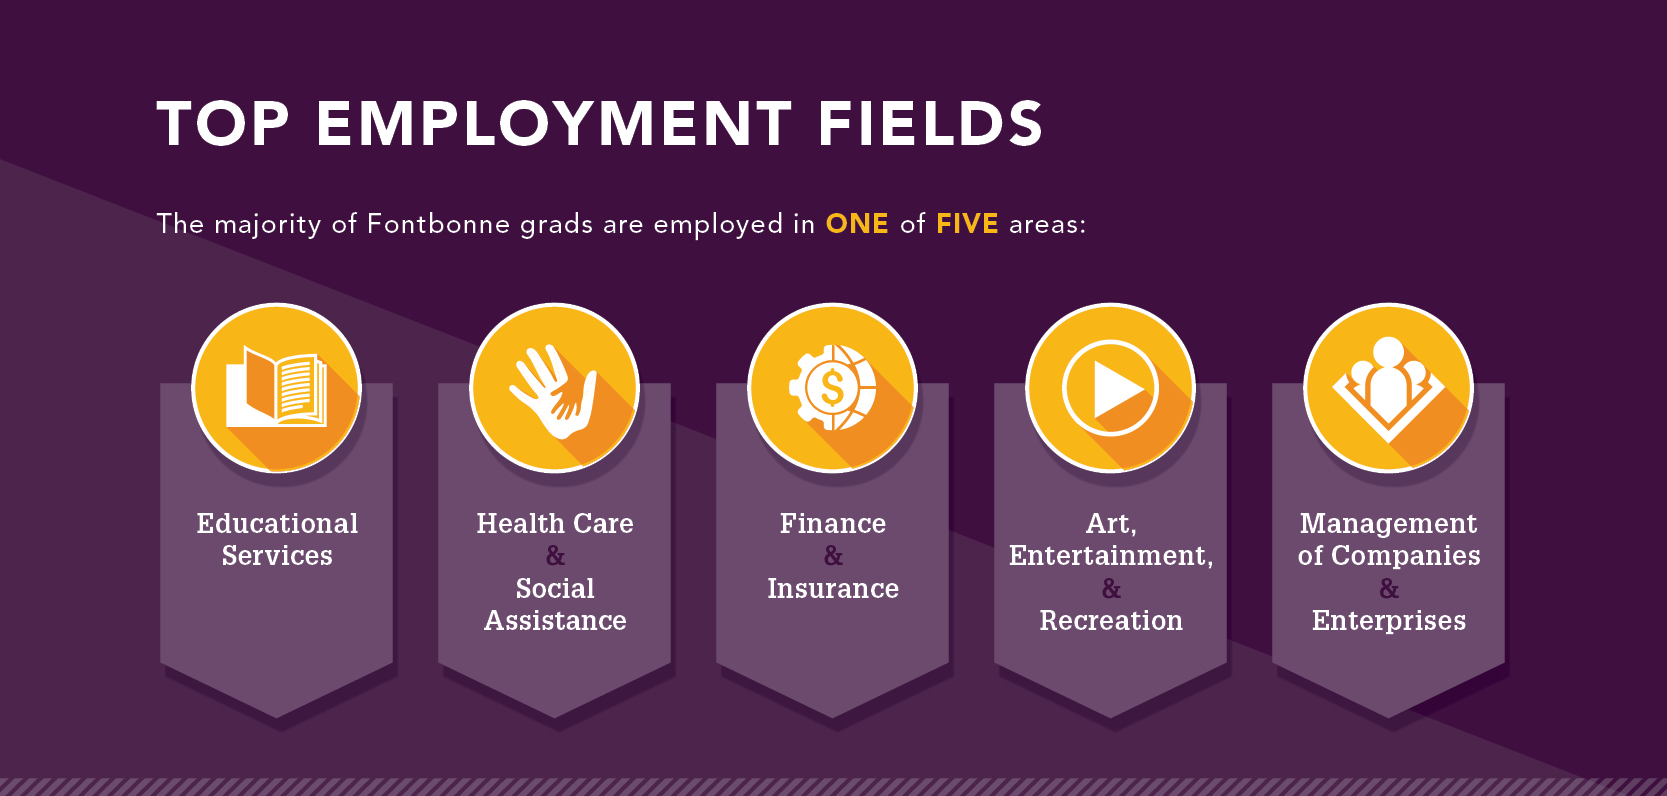 Career_Outcomes_Infographic_(Class_of_2015)_(WEB_Employment_Fields)_16